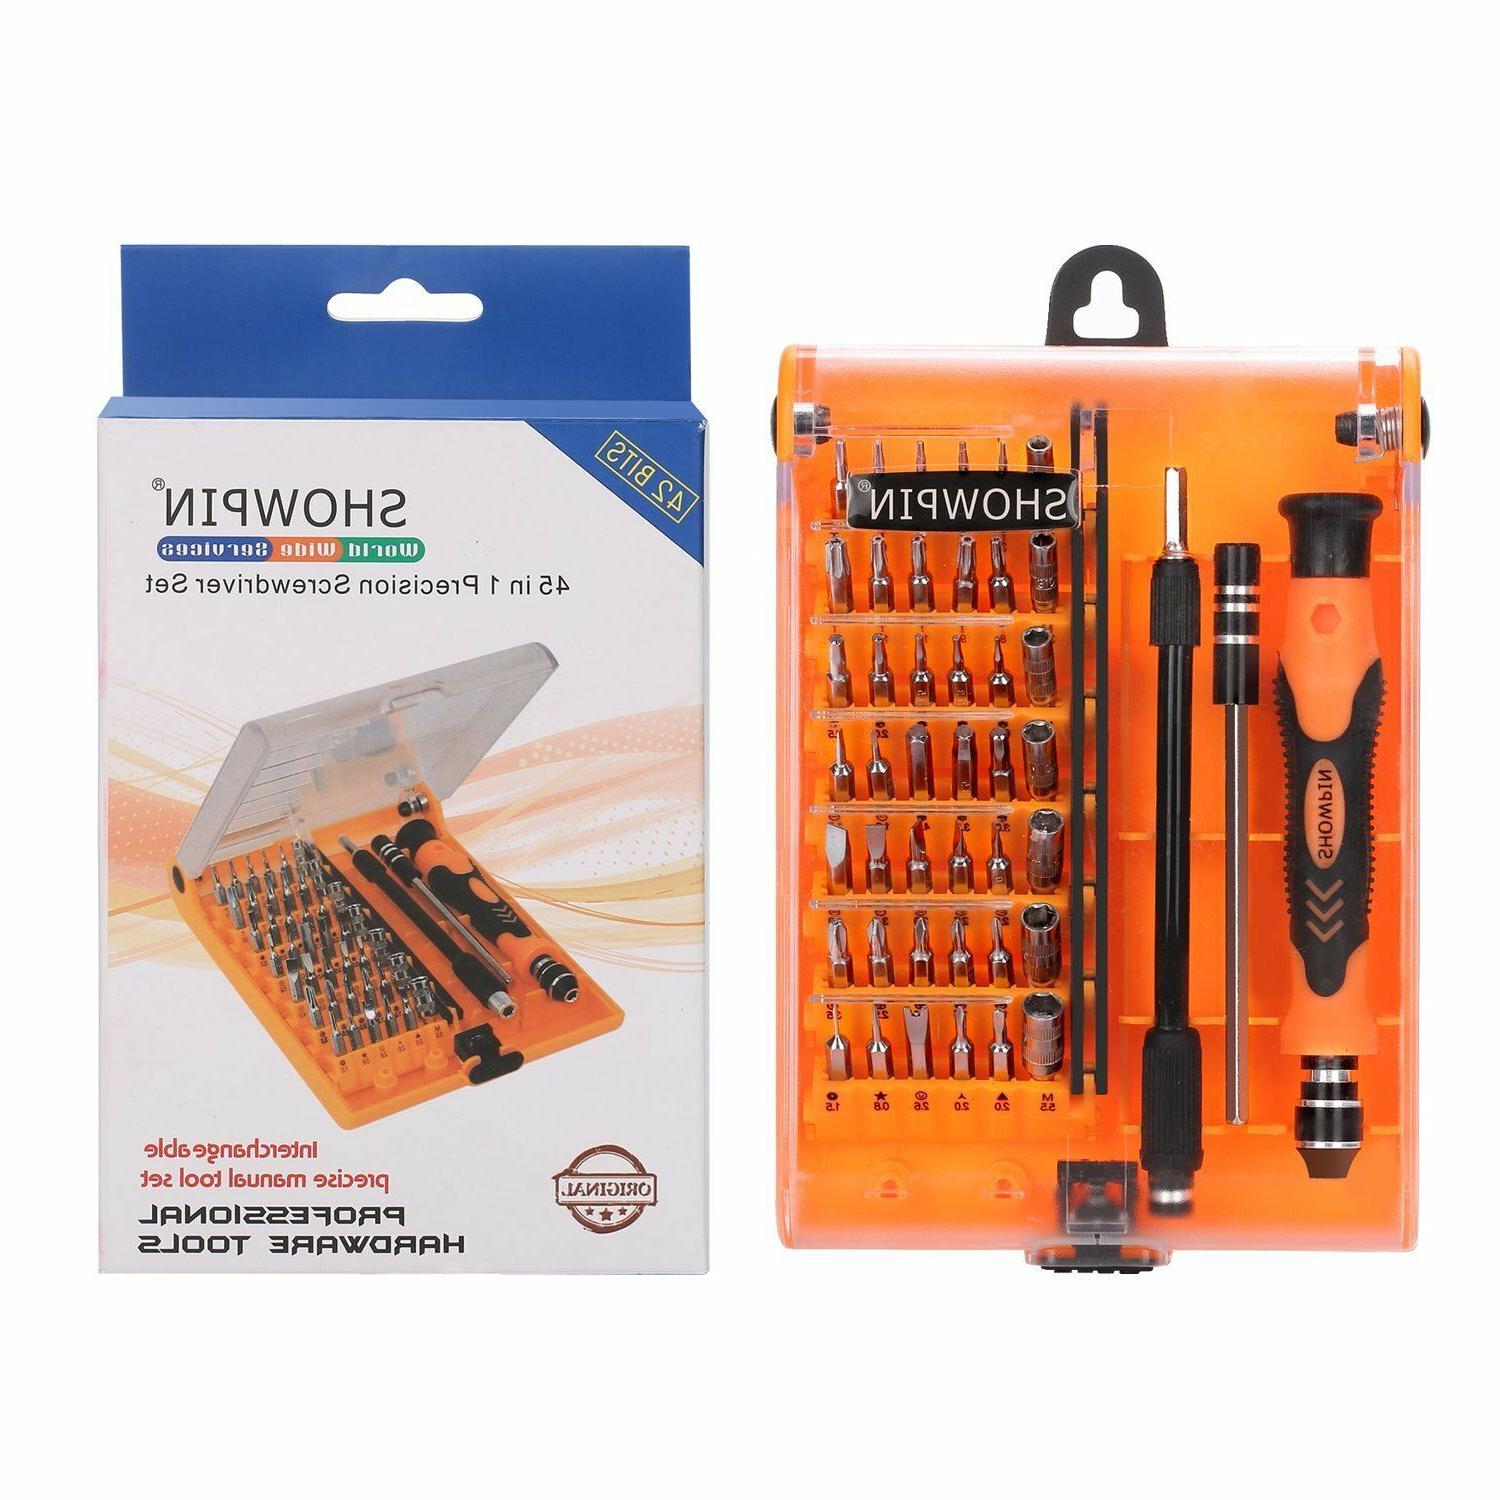 45in1 Precision Screwdriver Set with Handle Torx Bits